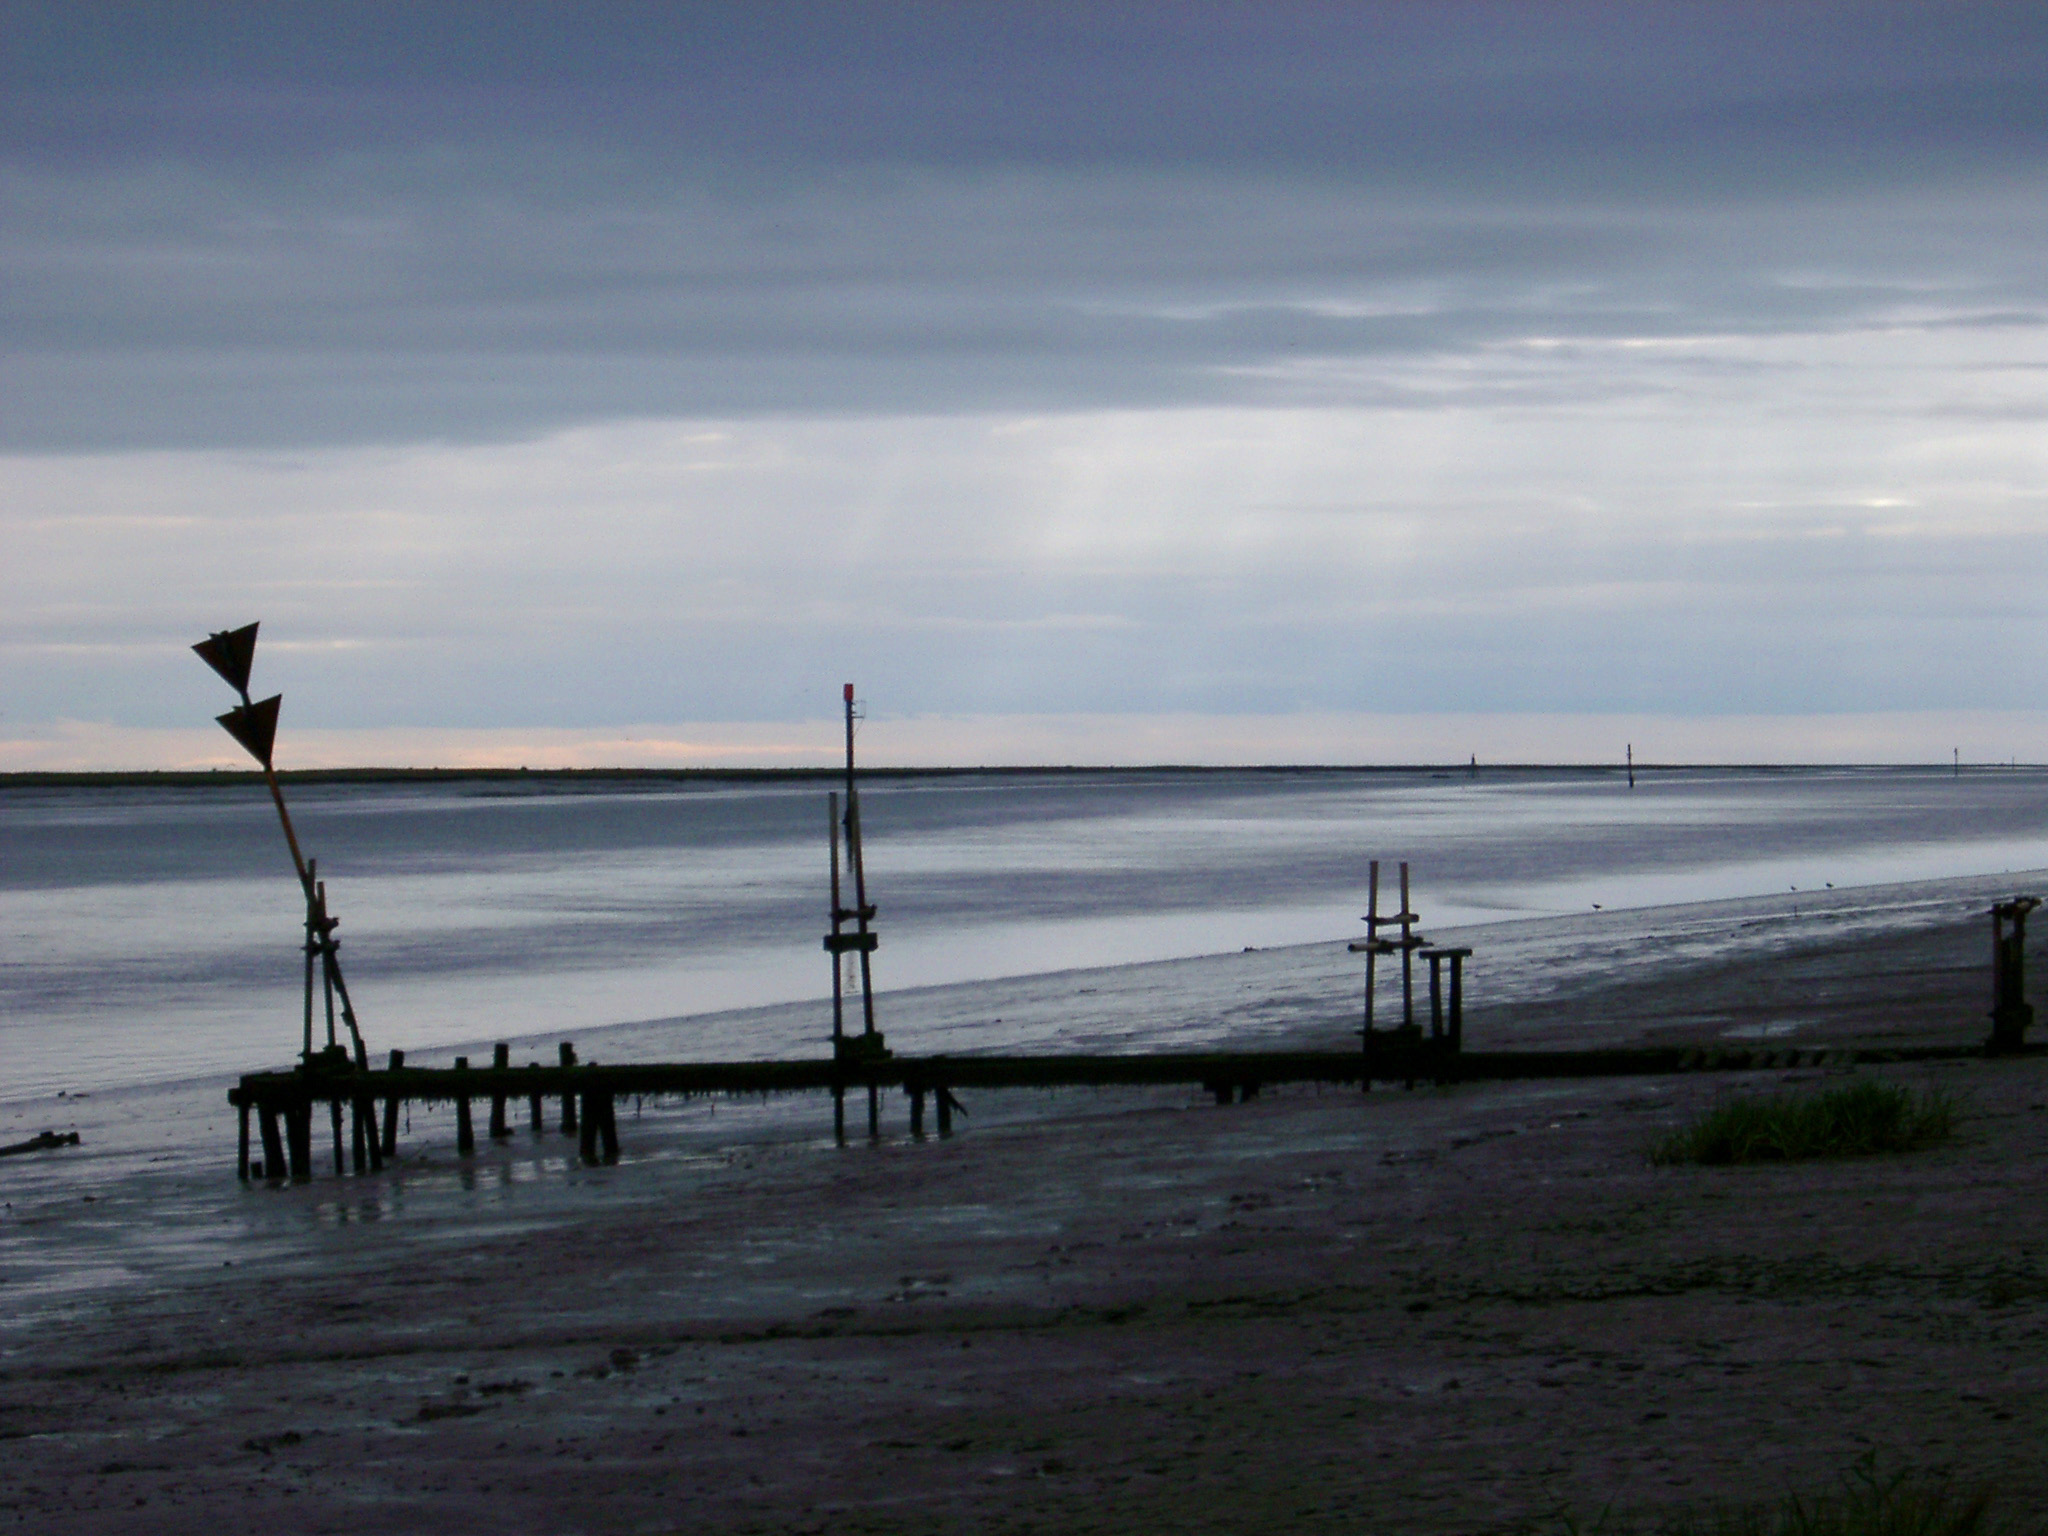 Dark atmospheric landscape of a marine estuary on an overcast stormy day with a silhouette of a small jetty and warning signs on the beach in the foreground